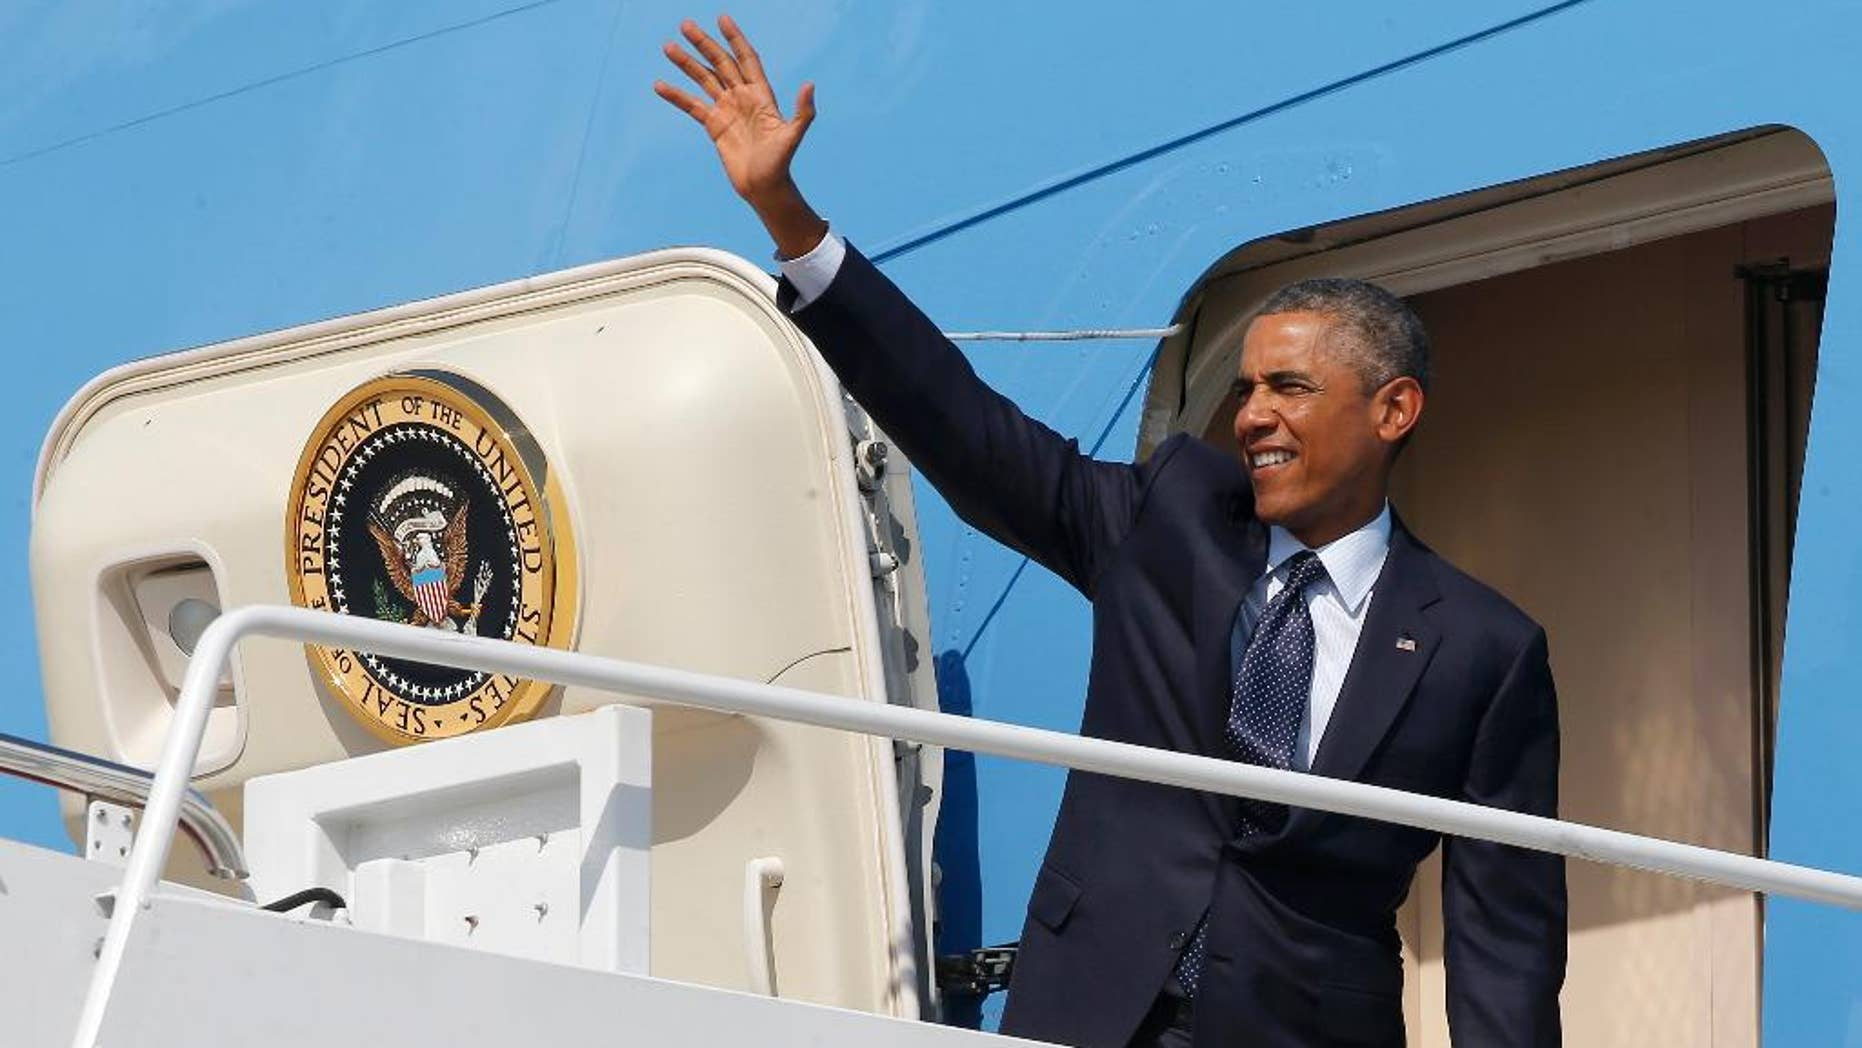 President Barack Obama waves as he boards Air Force One at Andrews Air Force Base, Md., Tuesday, Sept. 2, 2014, as he begins his trip to Estonia and Wales for the NATO Summit. (AP Photo/Charles Dharapak)